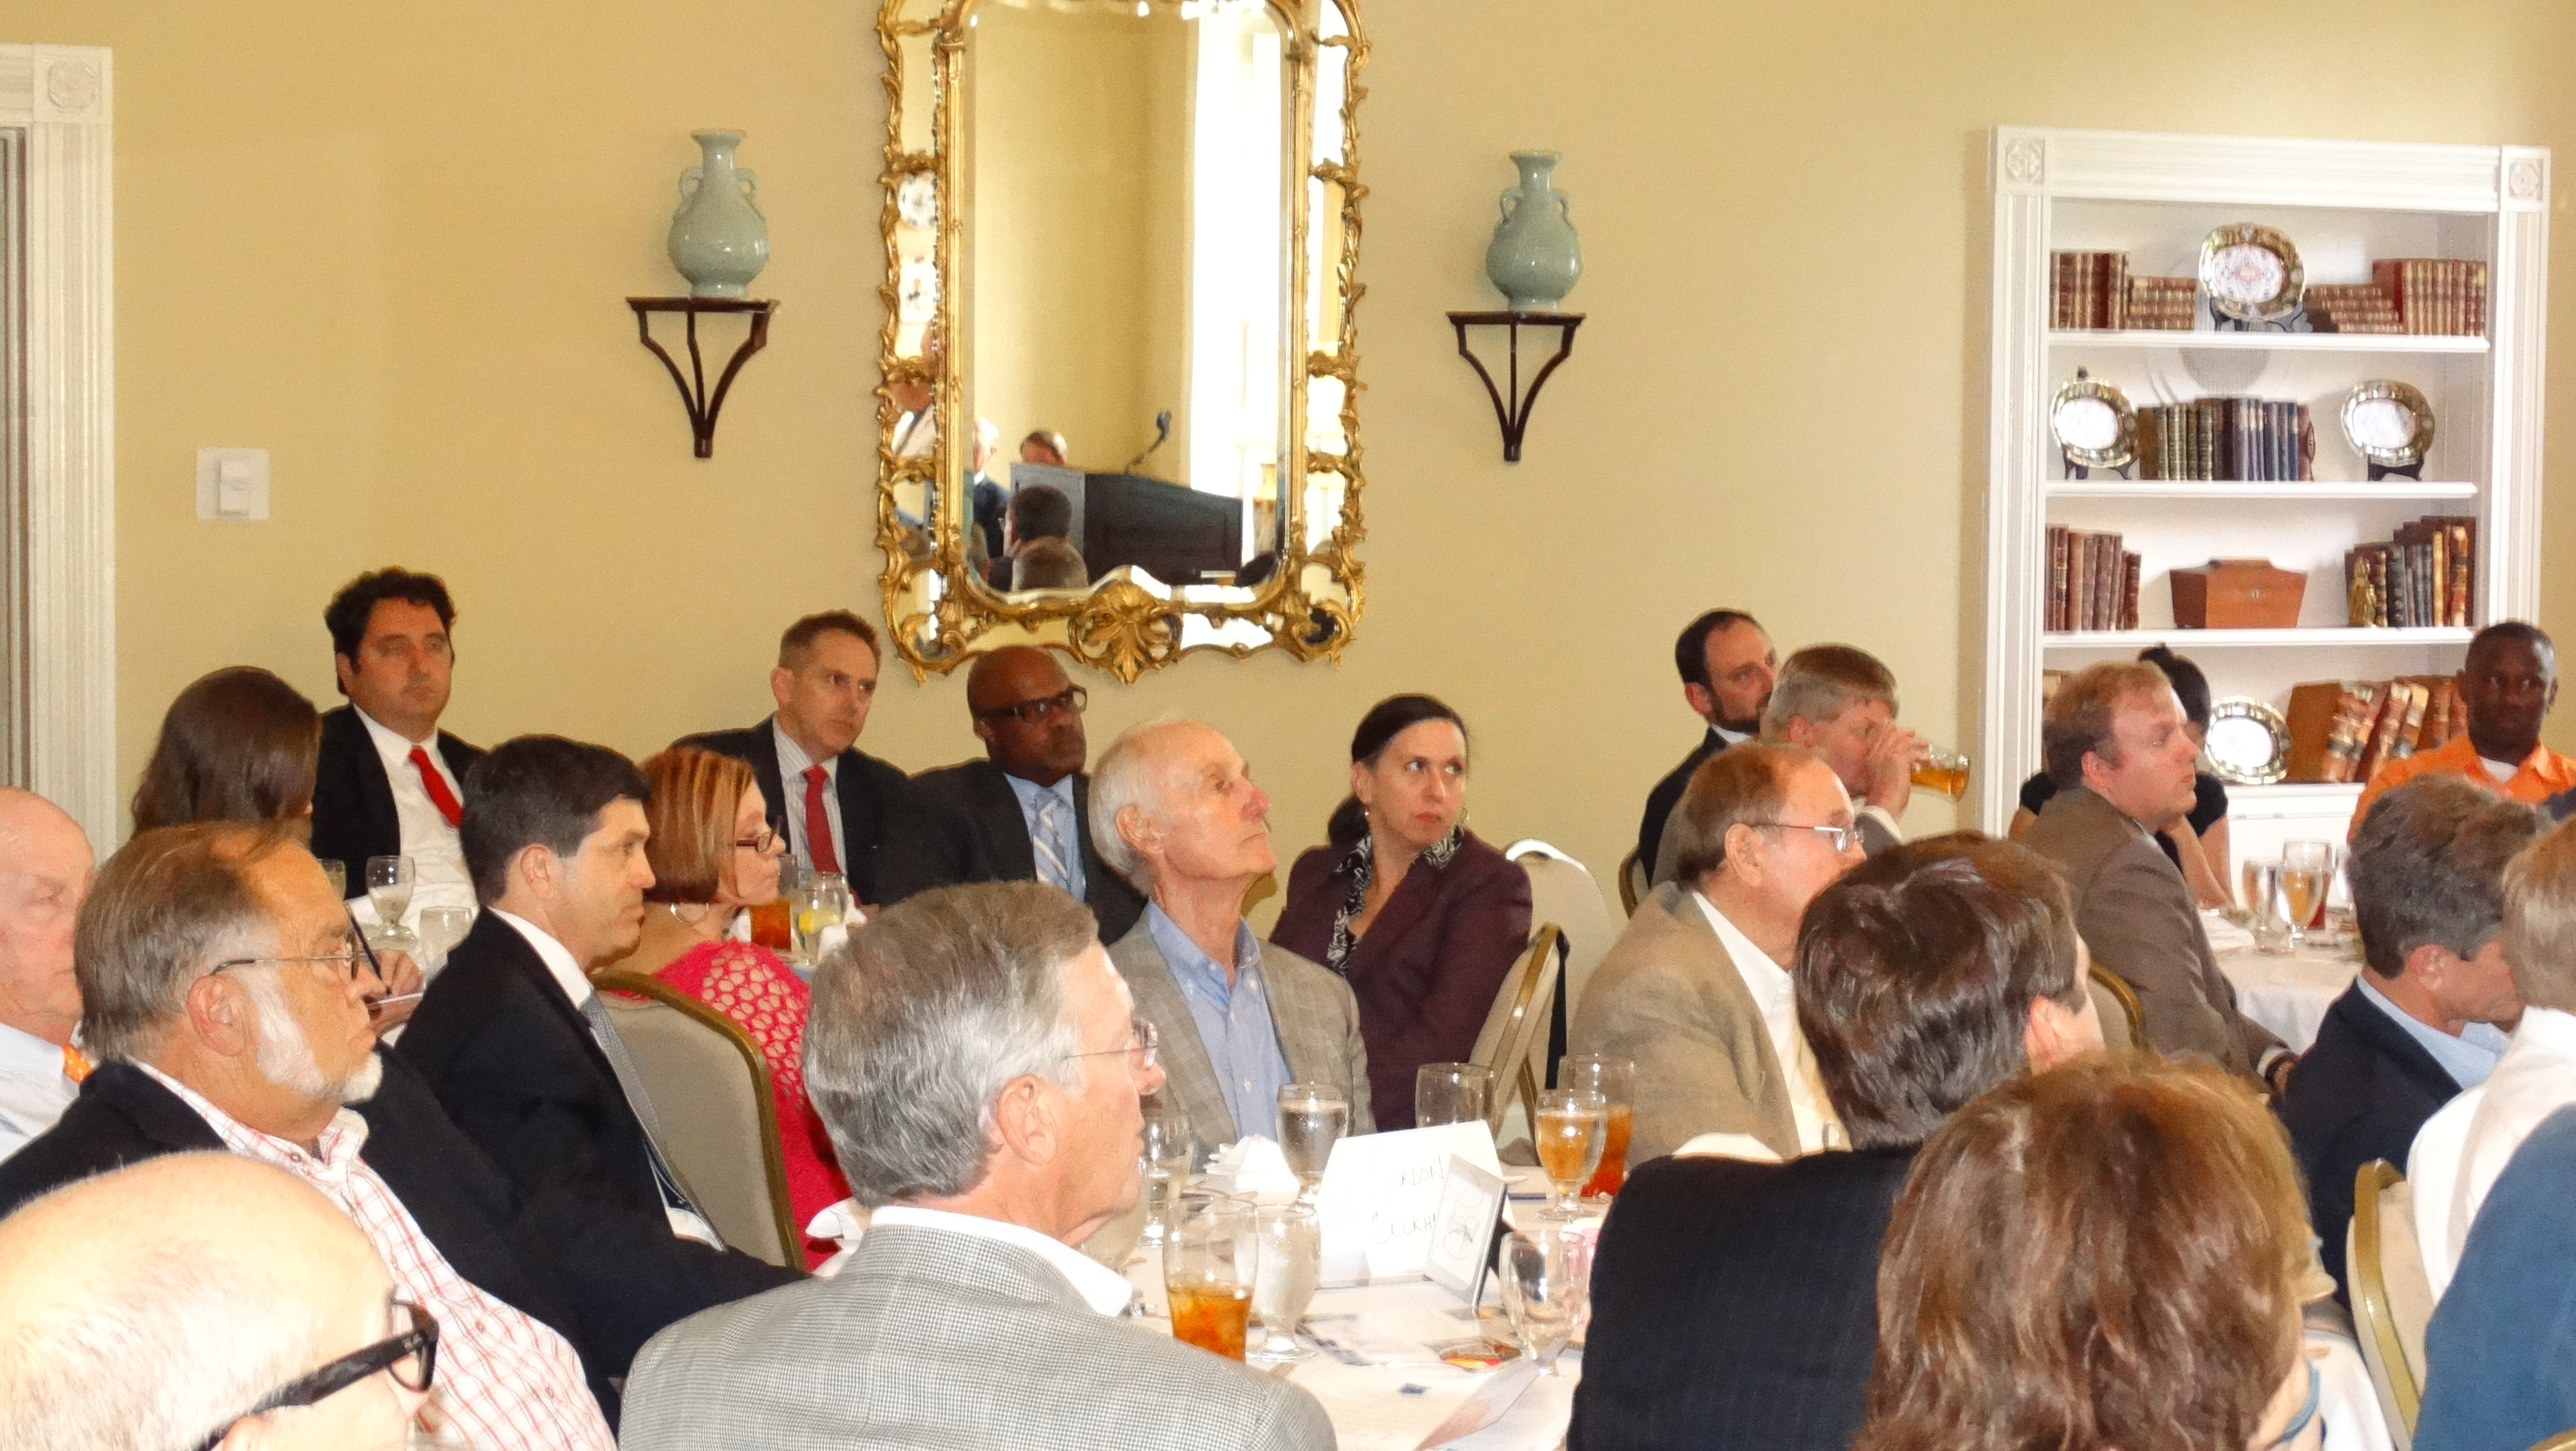 ATtendees listen intently to speaker Dr. Ben Scafidi at  the Foundation's 2014 Friedman Legacy for Freedom Event in Macon on Thursday